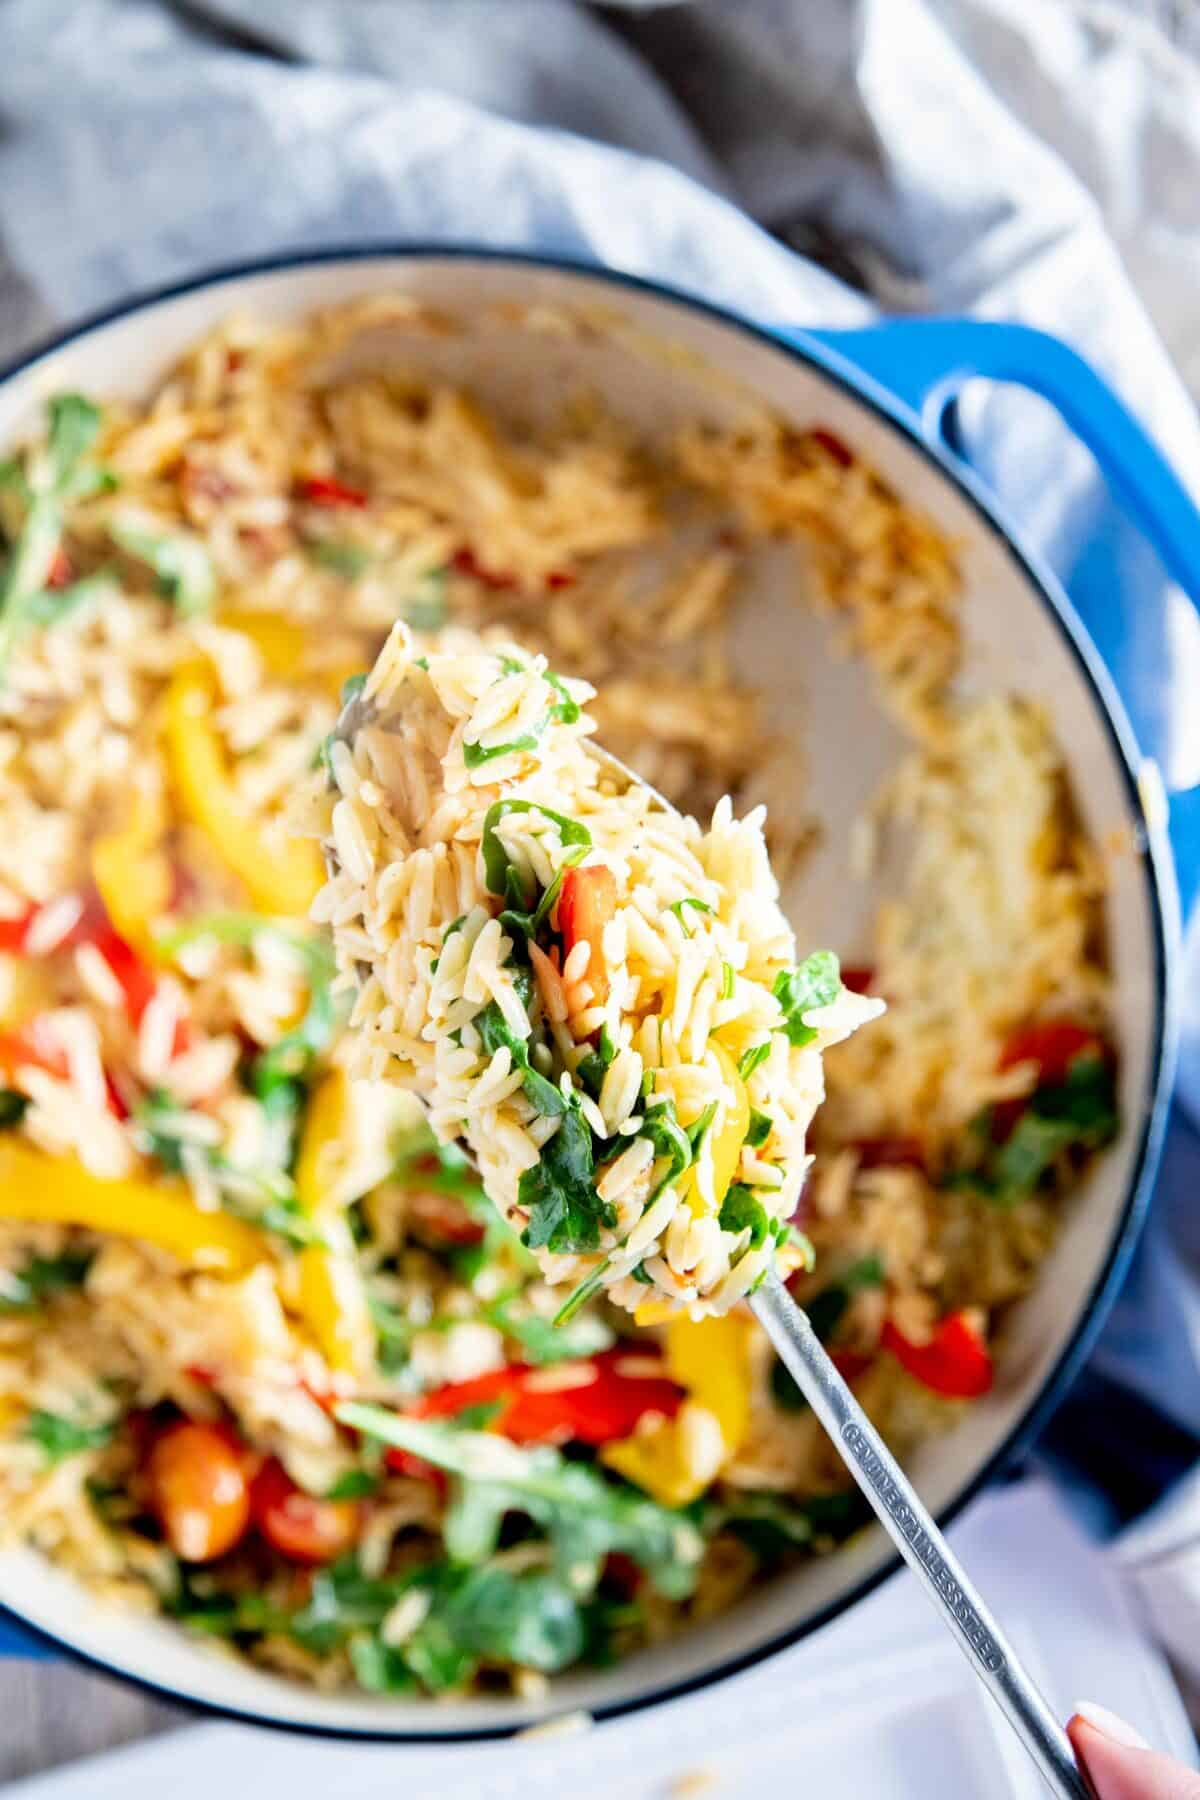 spoon full of orzo and vegetables